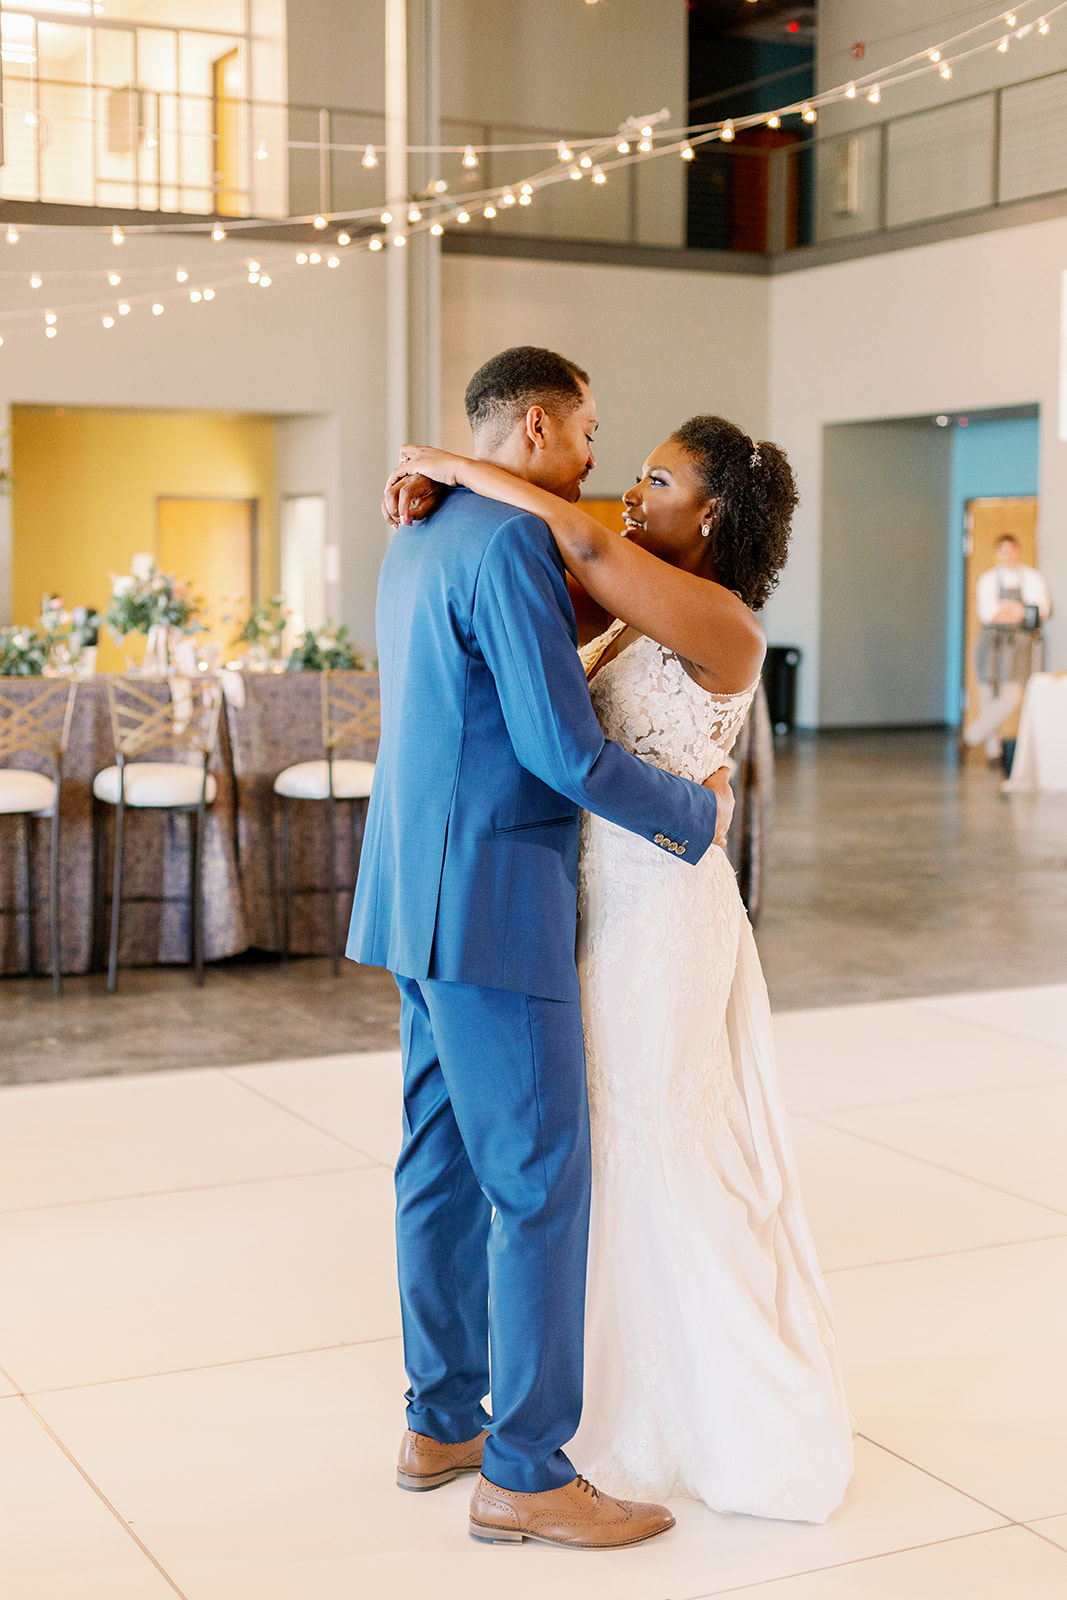 wedding couple first dance in industrial space